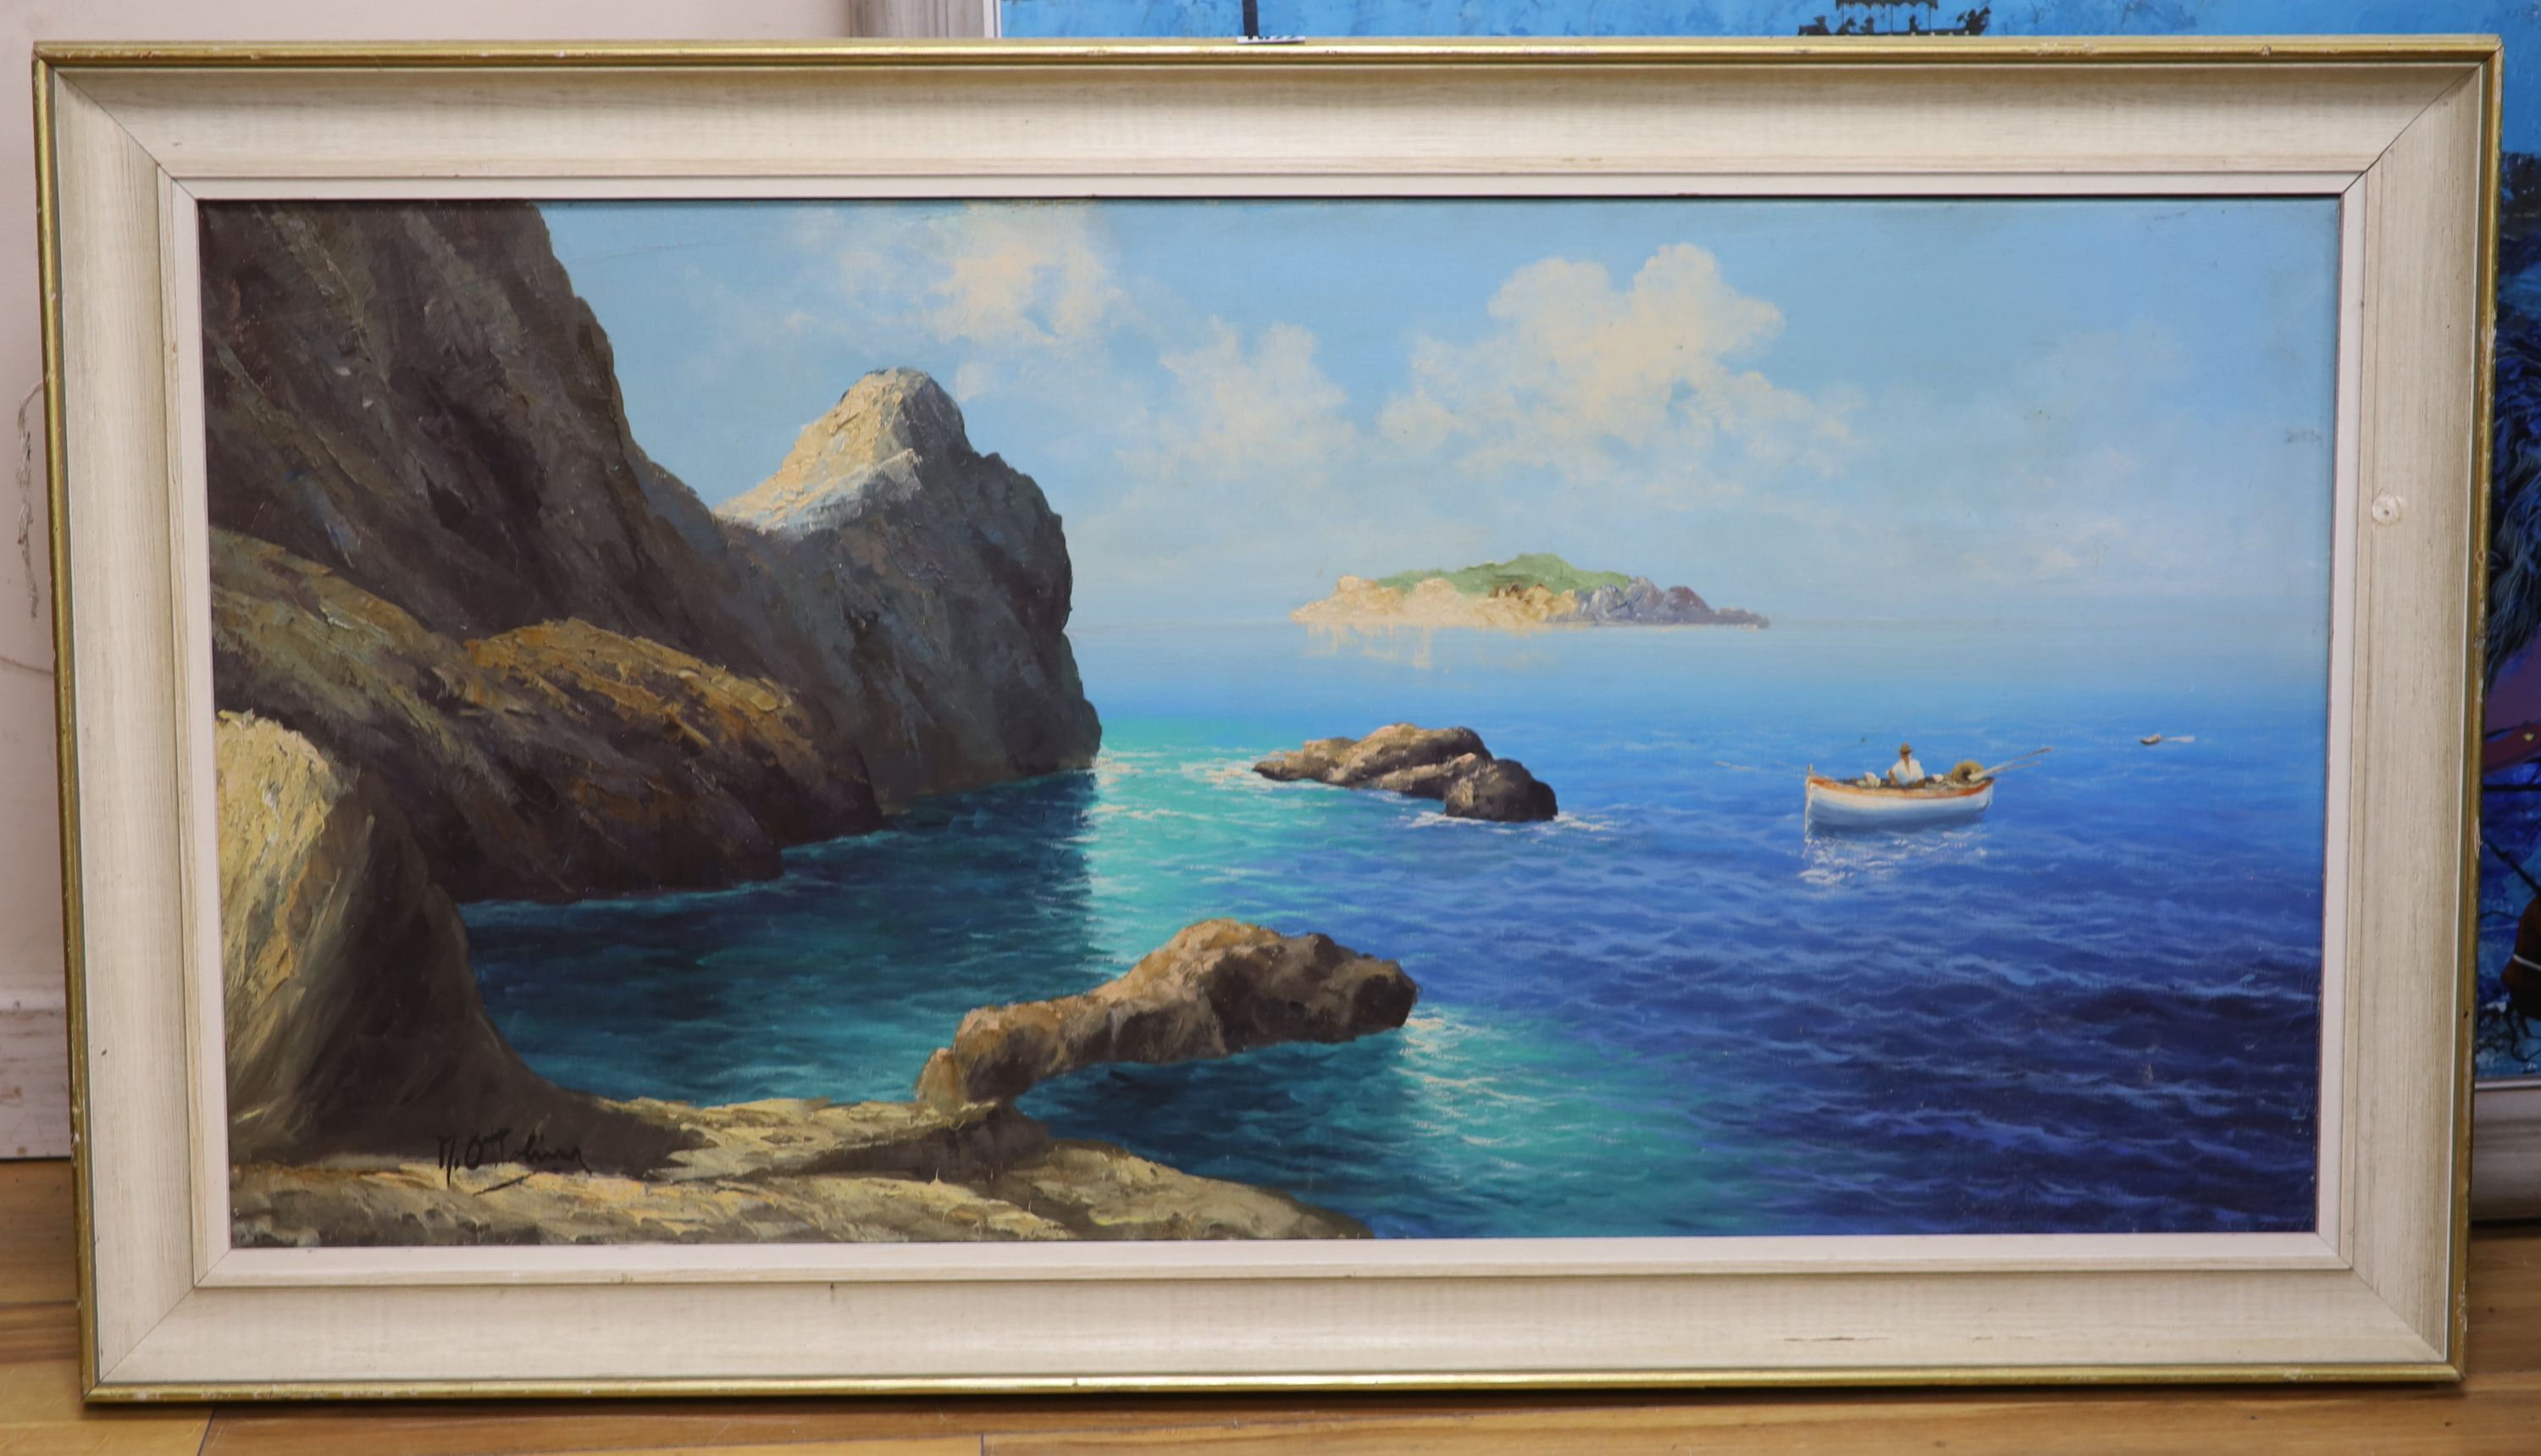 M. Ottolinaoil on canvasNeapolitan coastal scenesigned49 x 98cm - Image 4 of 4